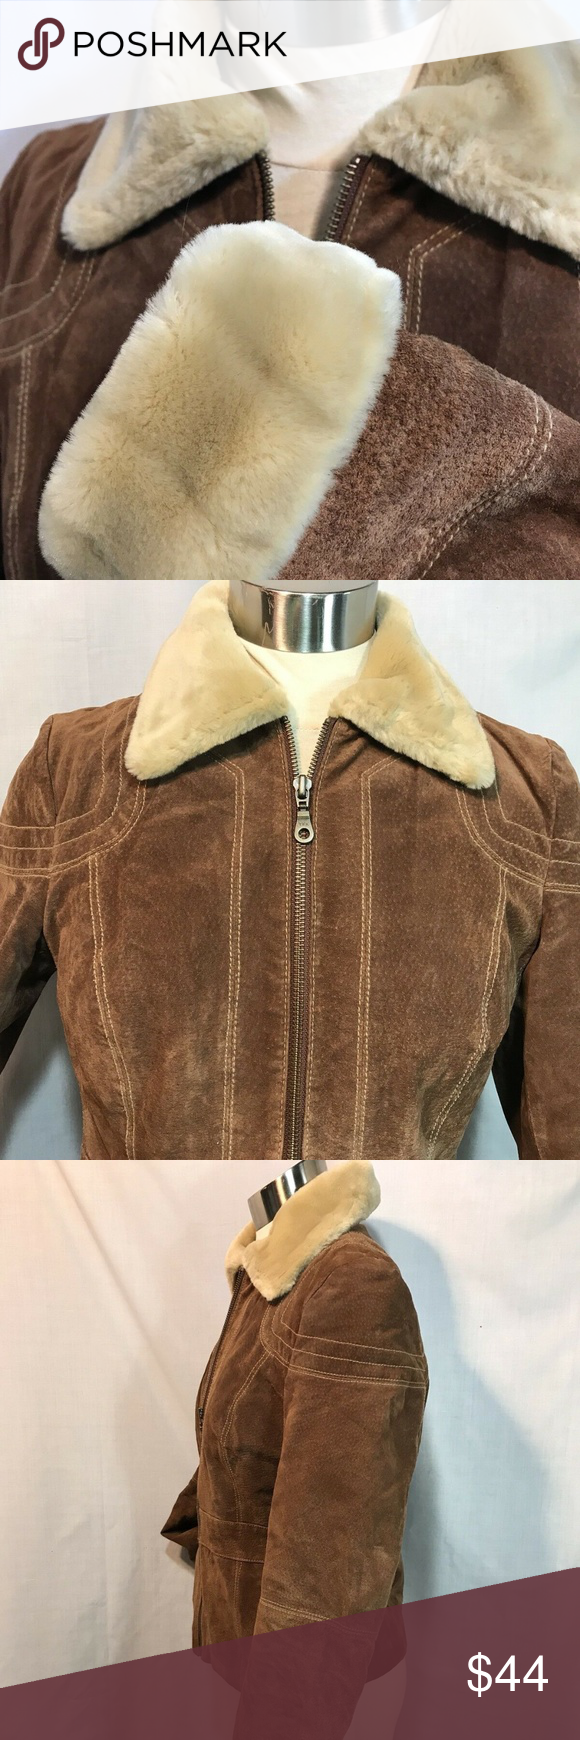 Wilsons Leather Suede Jacket Brown Faux Fur Lined Wilson's